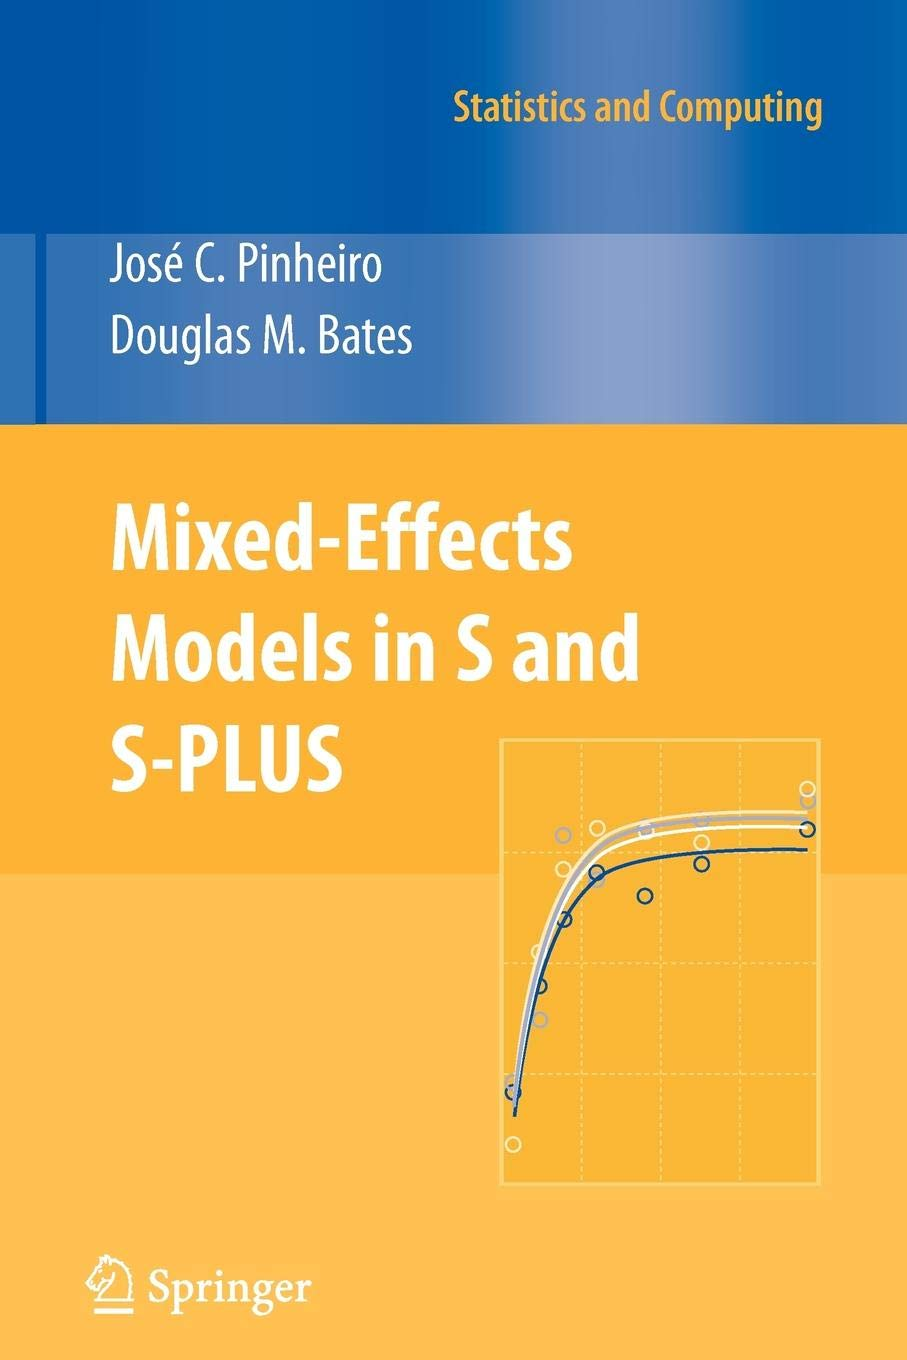 Buy Mixed-Effects Models in S and S-PLUS (Statistics and